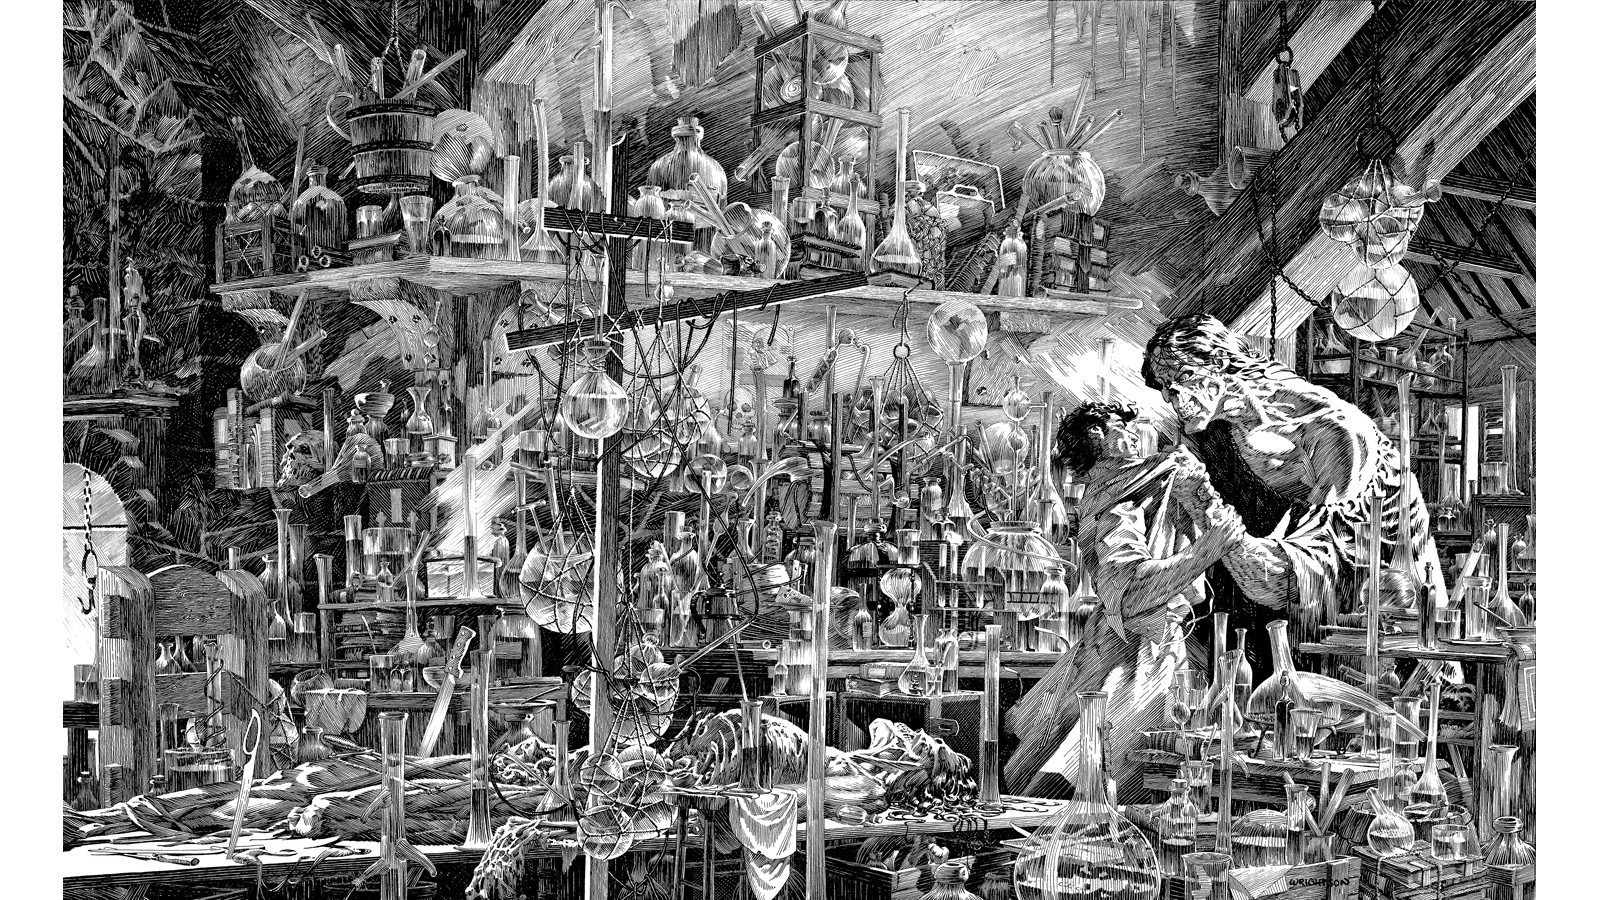 An overview of the laboratory work in frankenstein novel by mary shelley